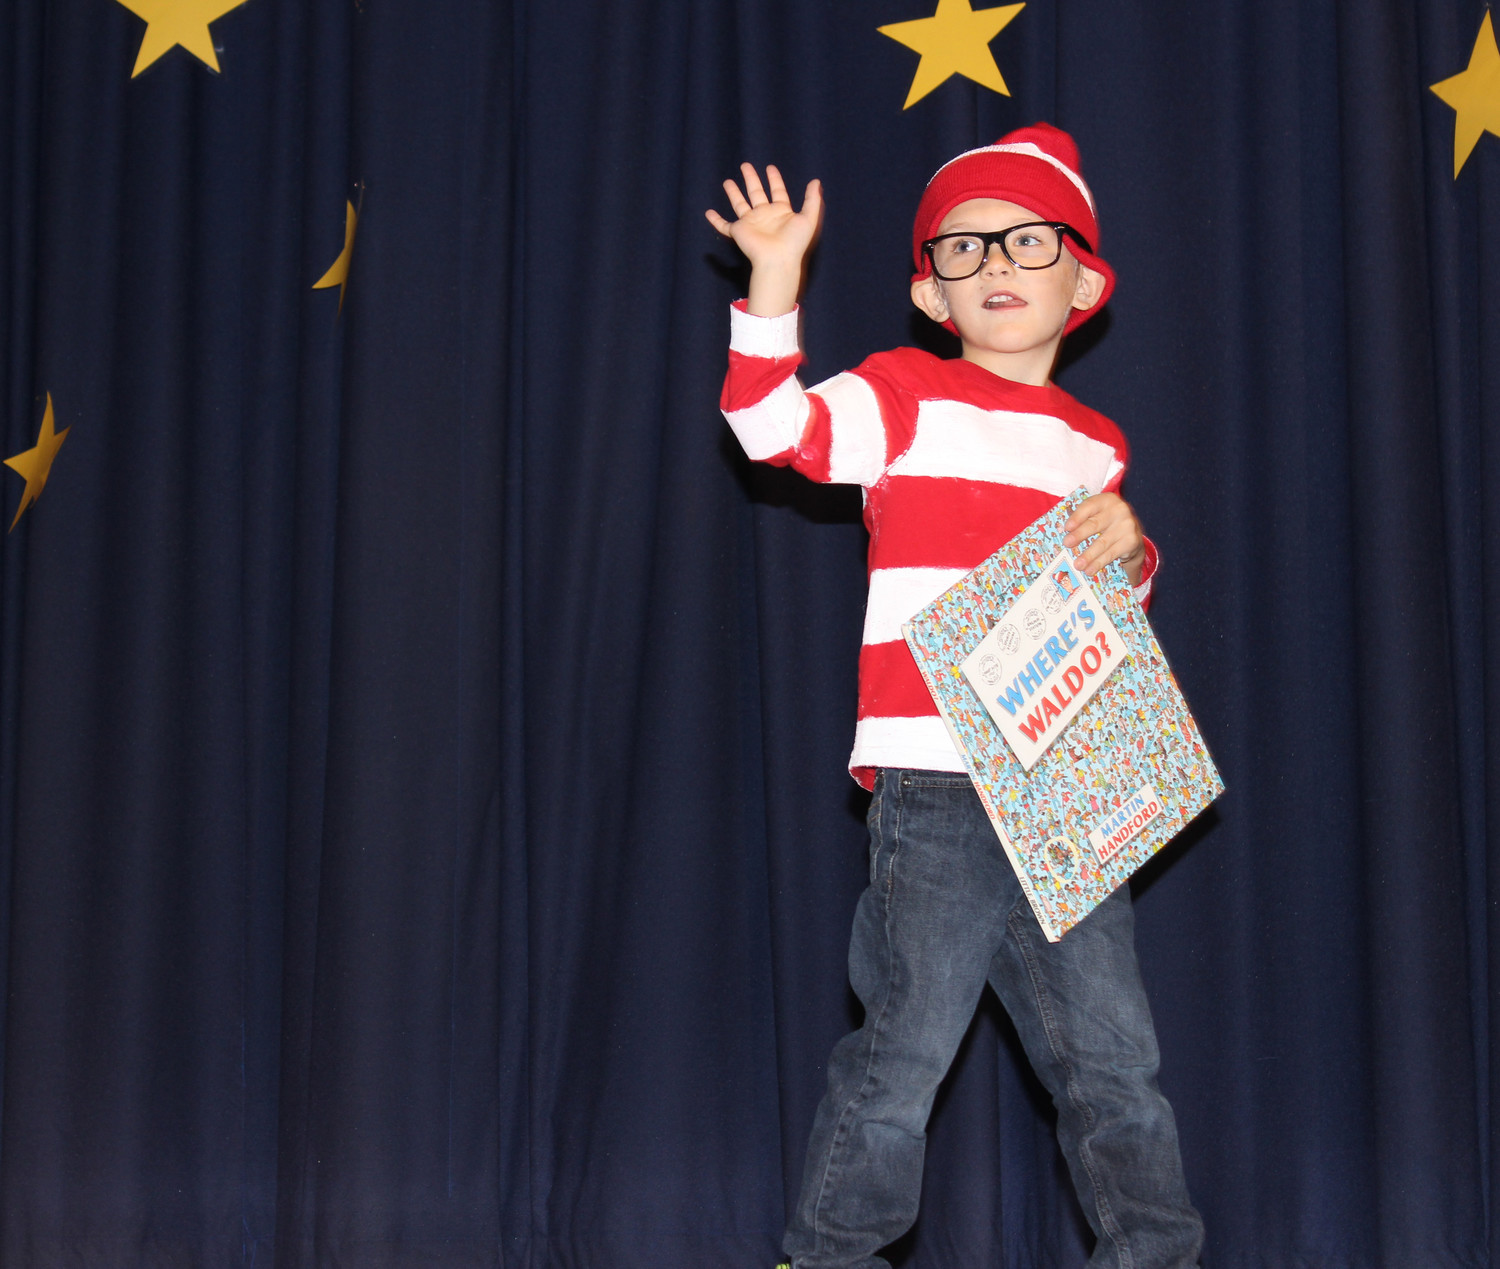 "One kindergartener dressed as Waldo from the classic search-and-find book ""Where's Waldo?"" holding a copy of the book as he marched with his fellow classmates."